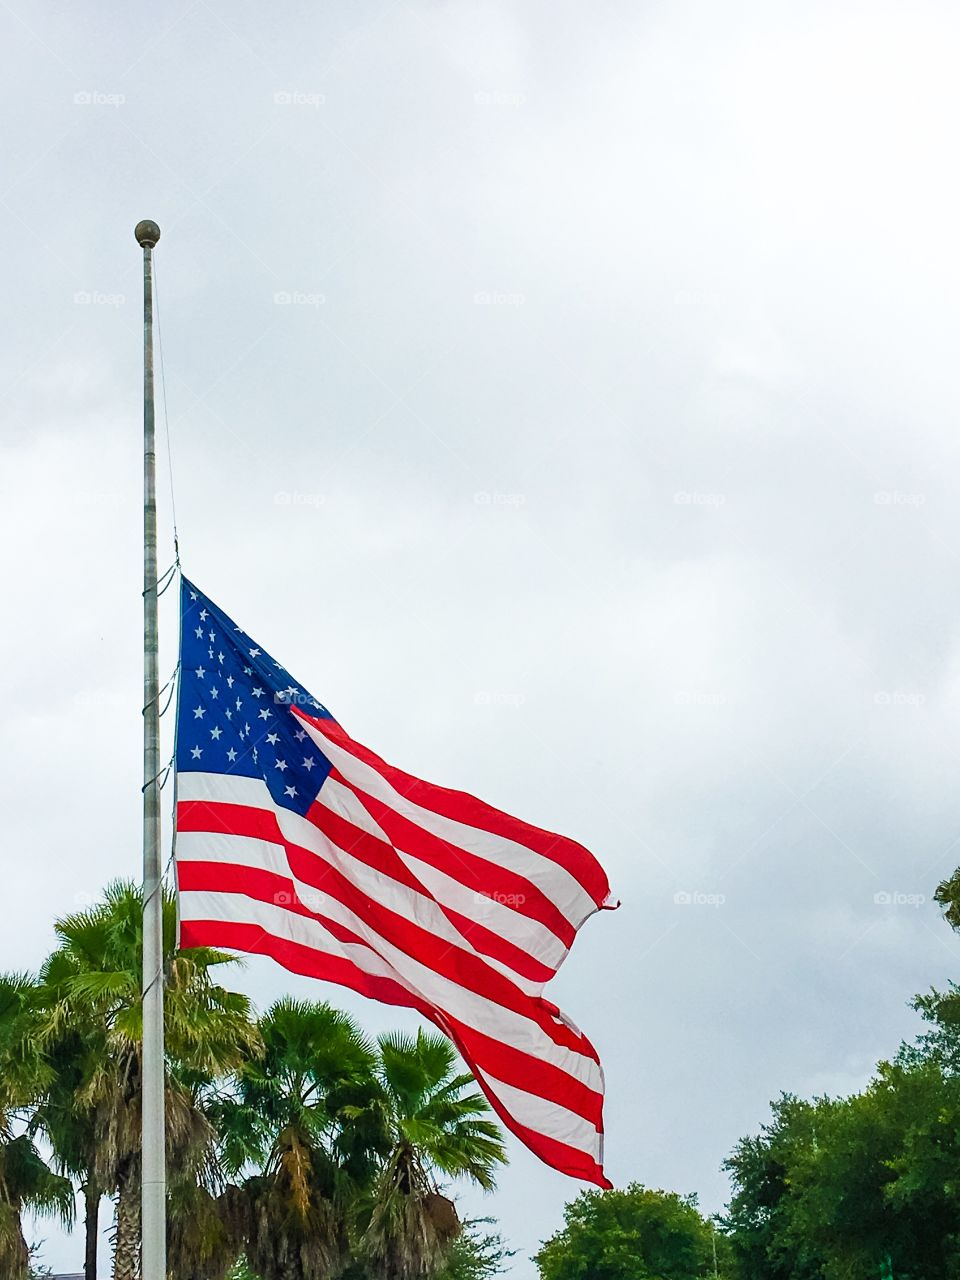 American flag on pole with trees